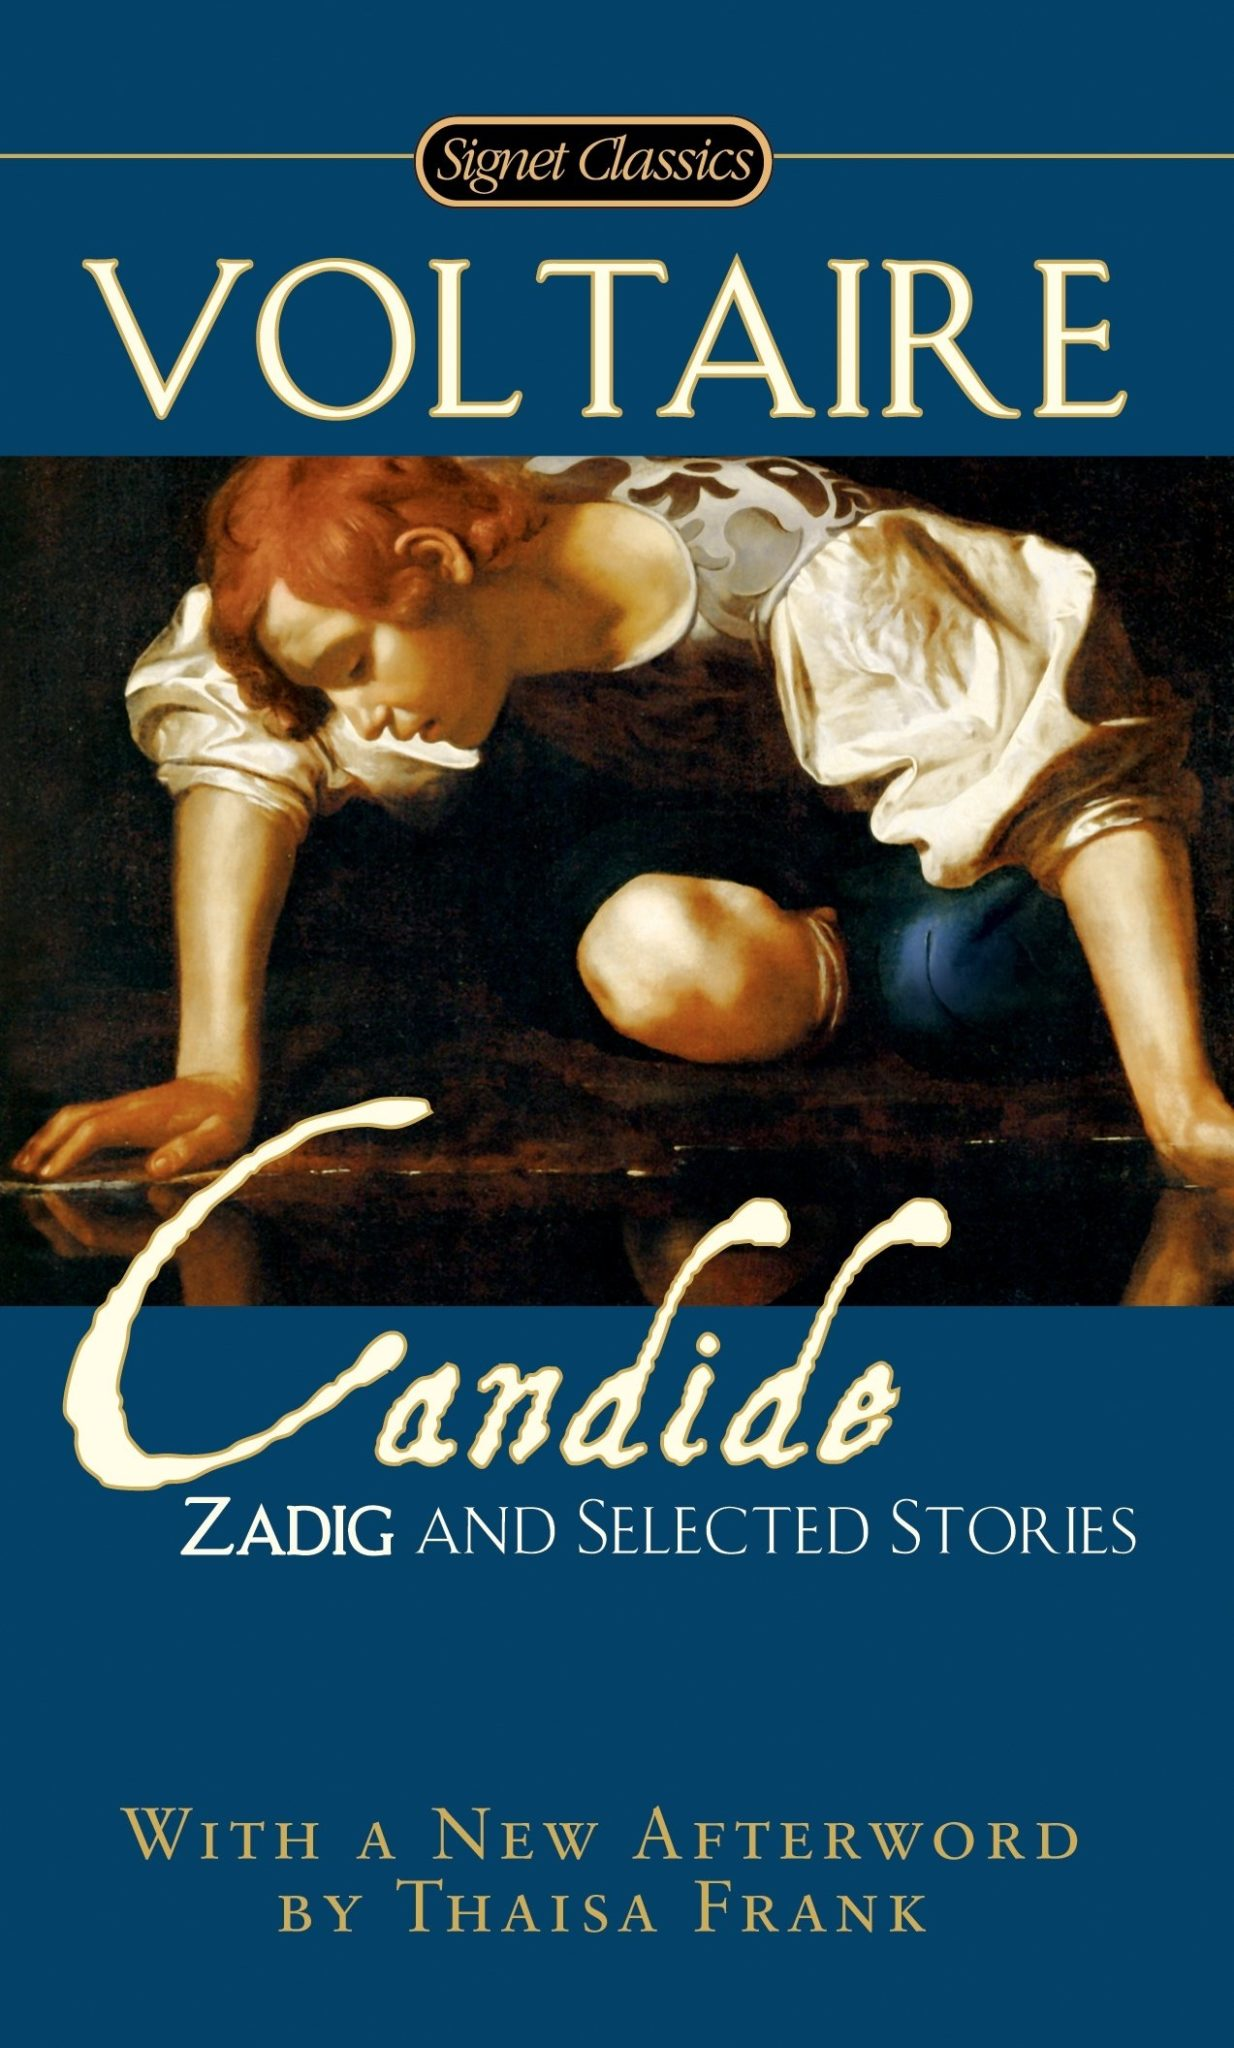 Candide, Zadig and selected stories Voltaire